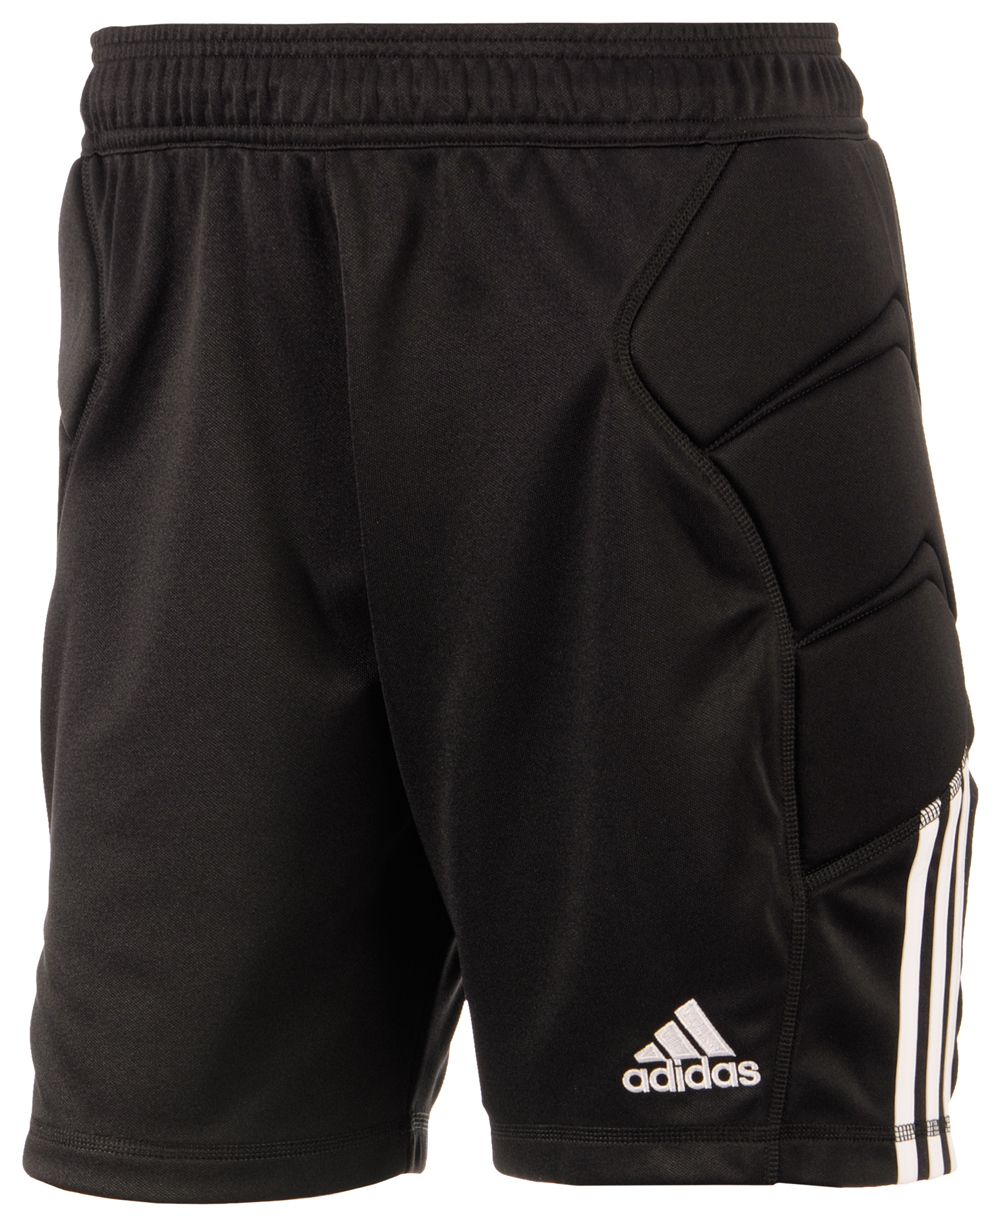 Kinder Sportshort Tierro 13 Goalkeeper Short